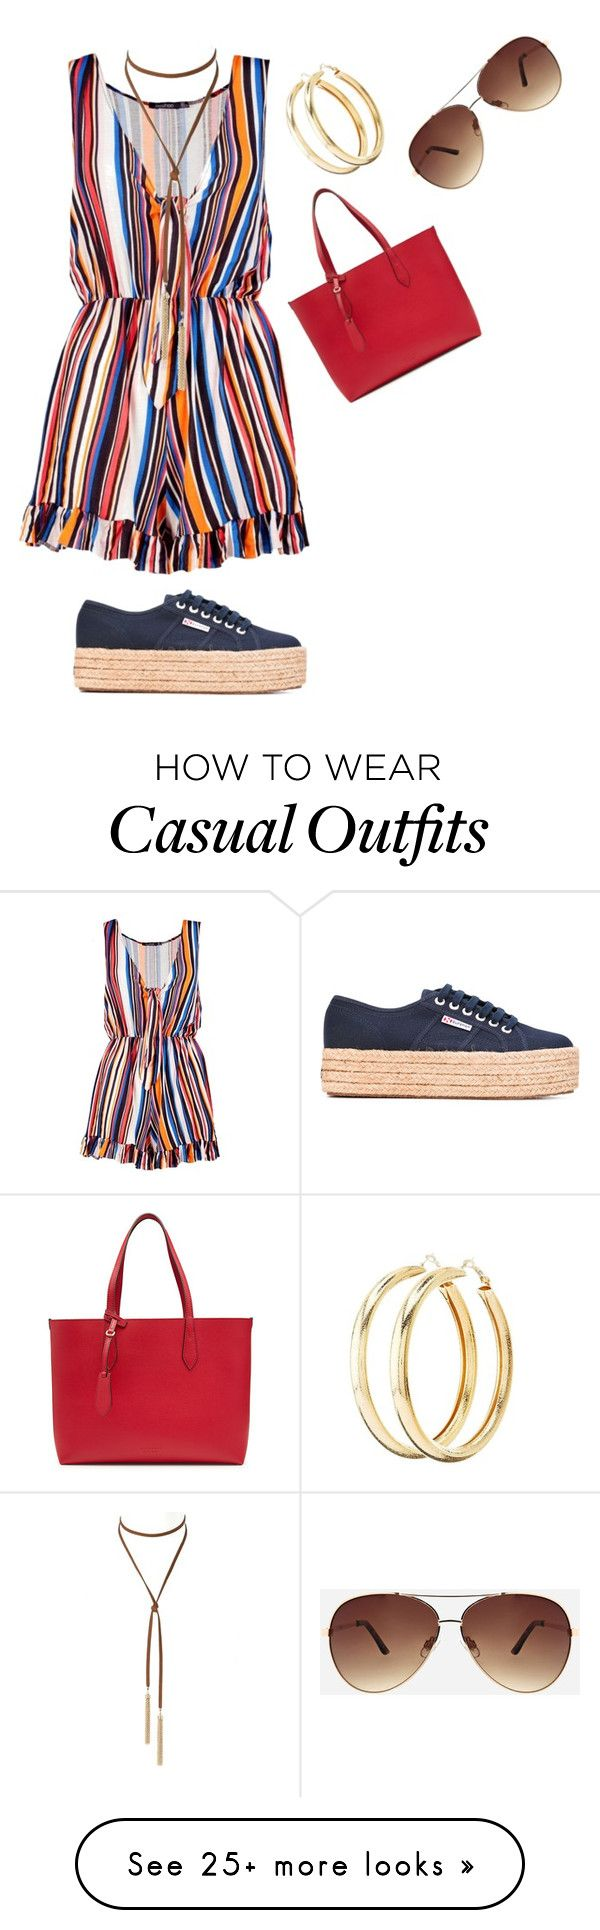 """Plus Romper Style 3/Casual"" by xtrak on Polyvore featuring Boohoo, Superga, Burberry, Charlotte Russe and Ashley Stewart"